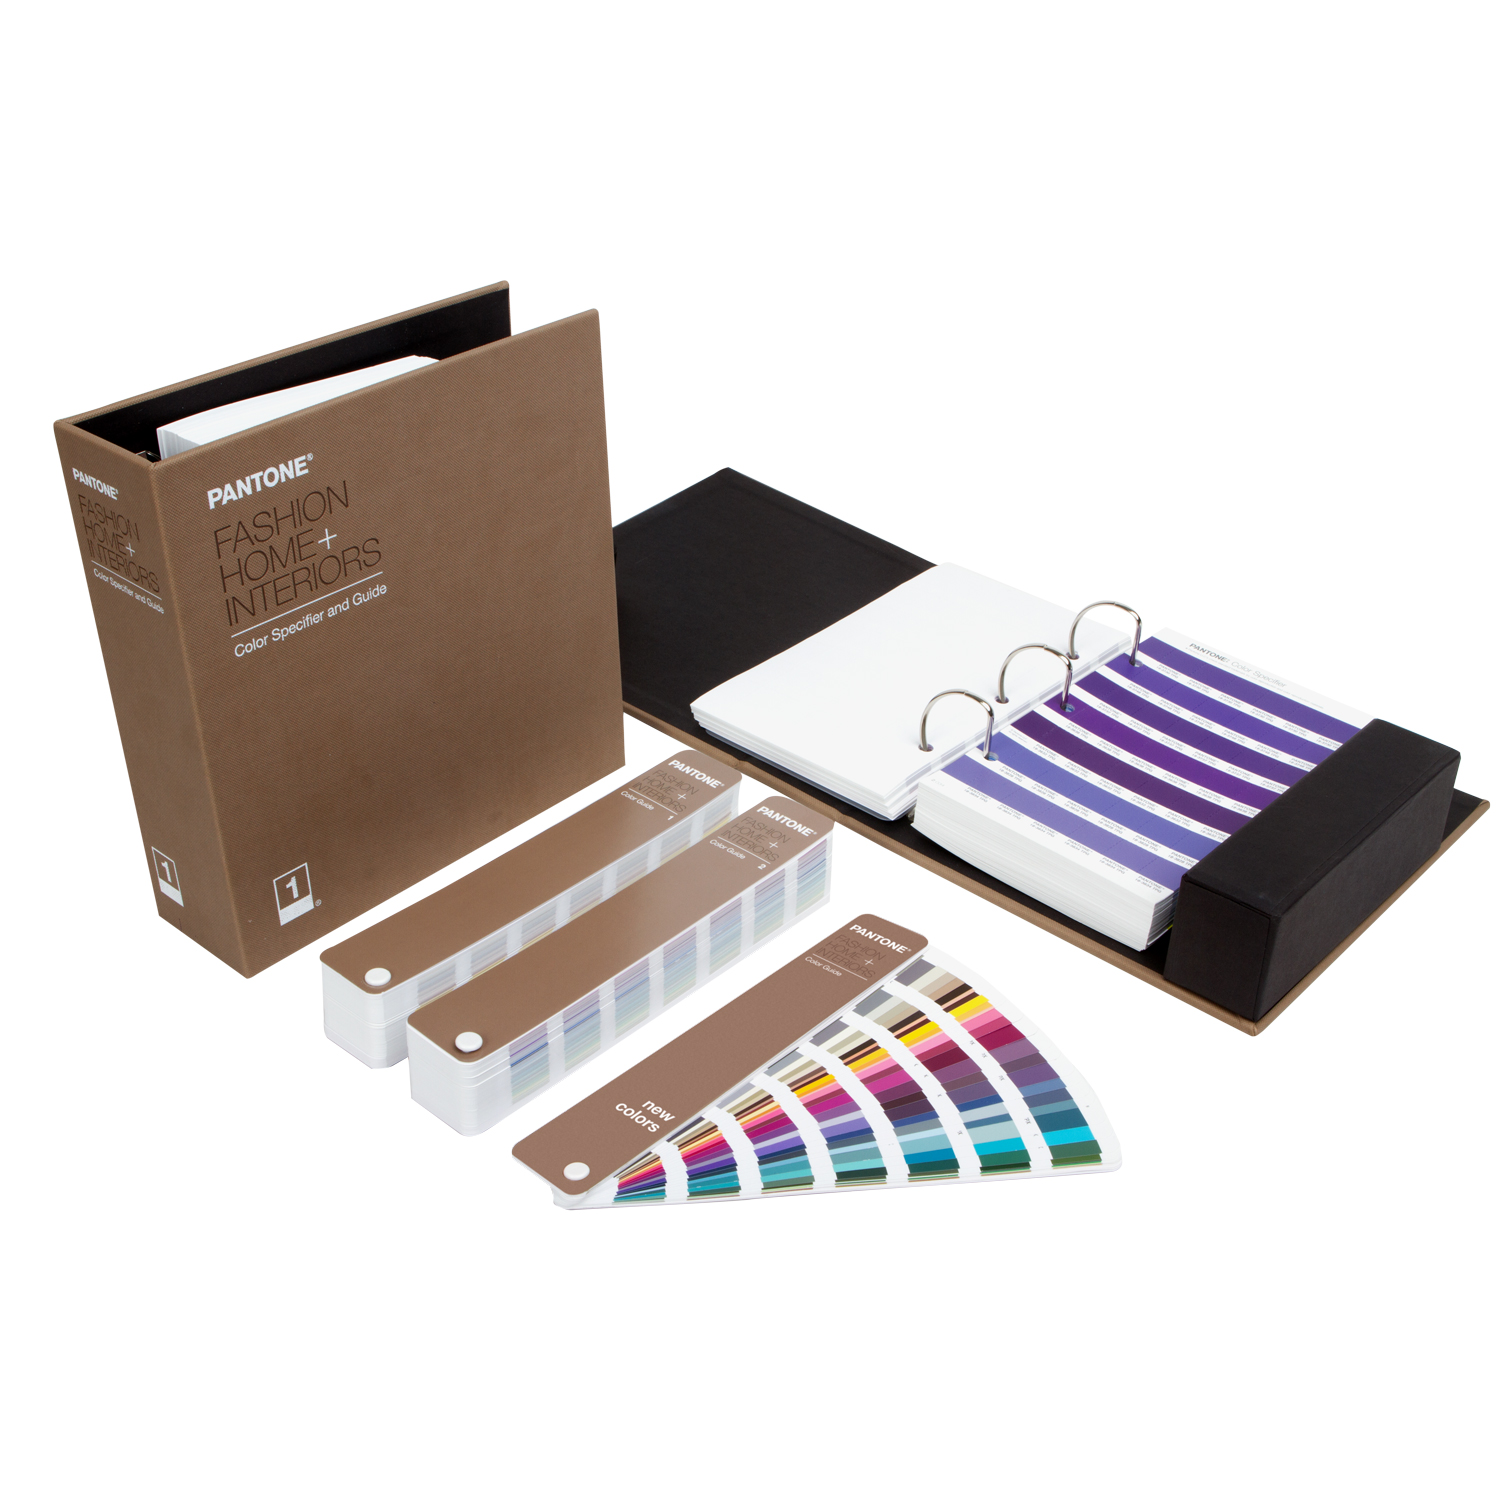 Pantone TPG Specifier + Guide With Supplements